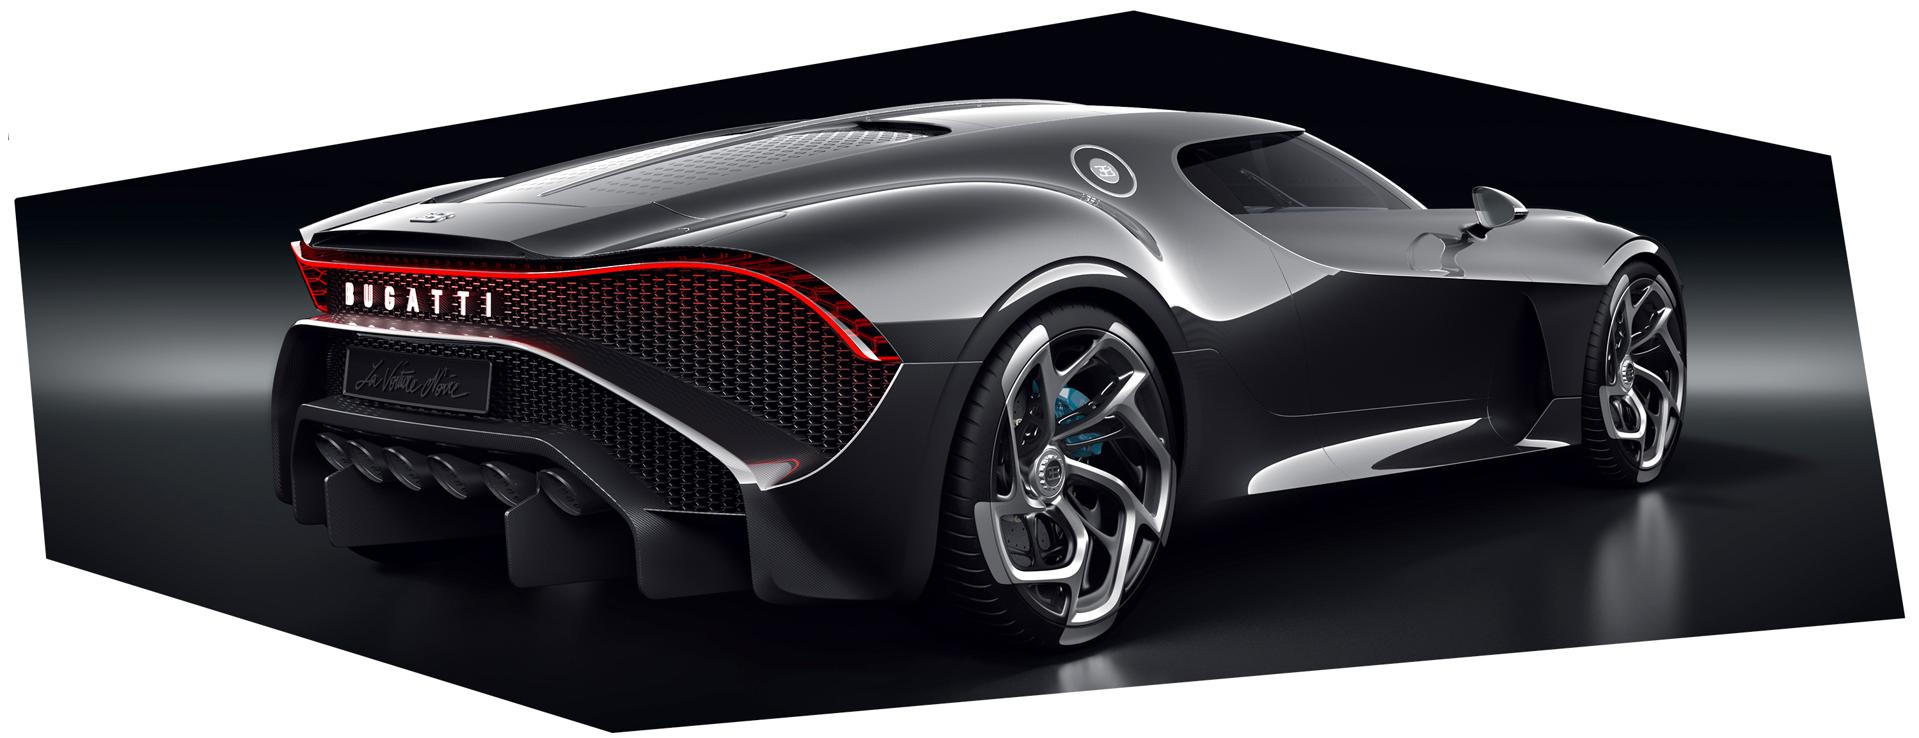 Top Exotic Cars 2020.The Best New Supercars Hypercars And Sports Cars From The 2019